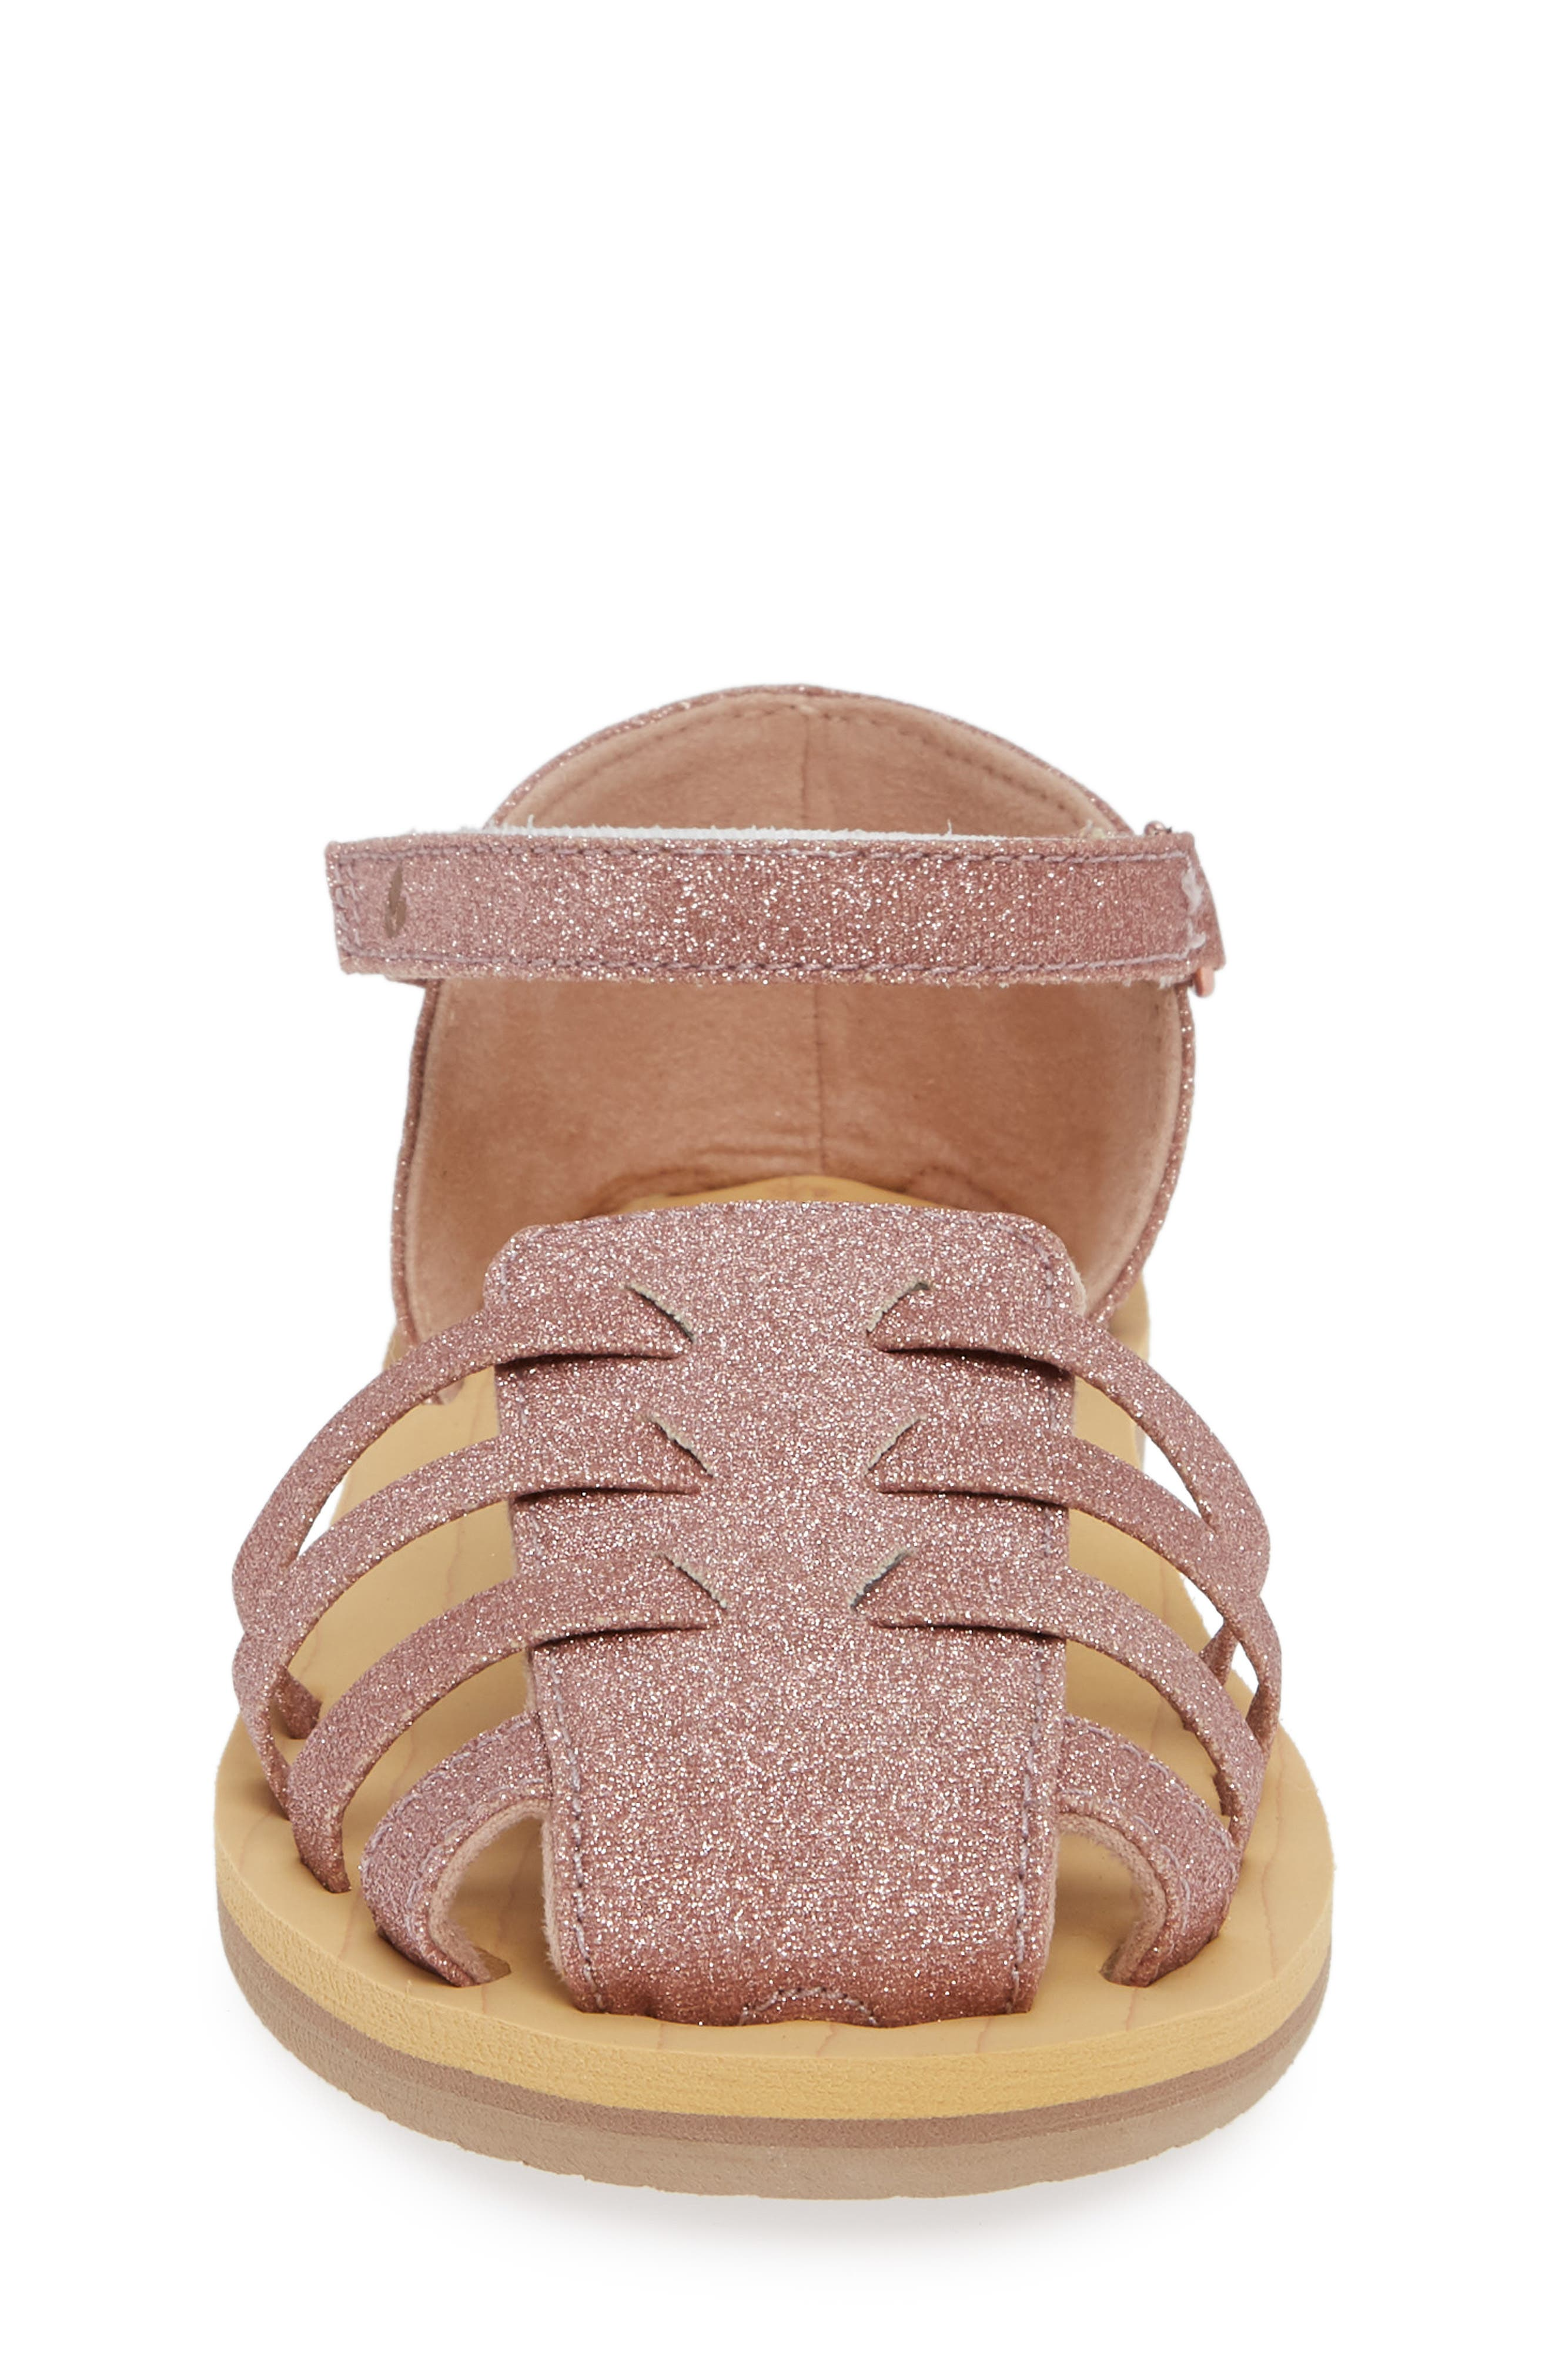 REEF, Little Reef Prep Glitter Fisherman Sandal, Alternate thumbnail 4, color, ROSE